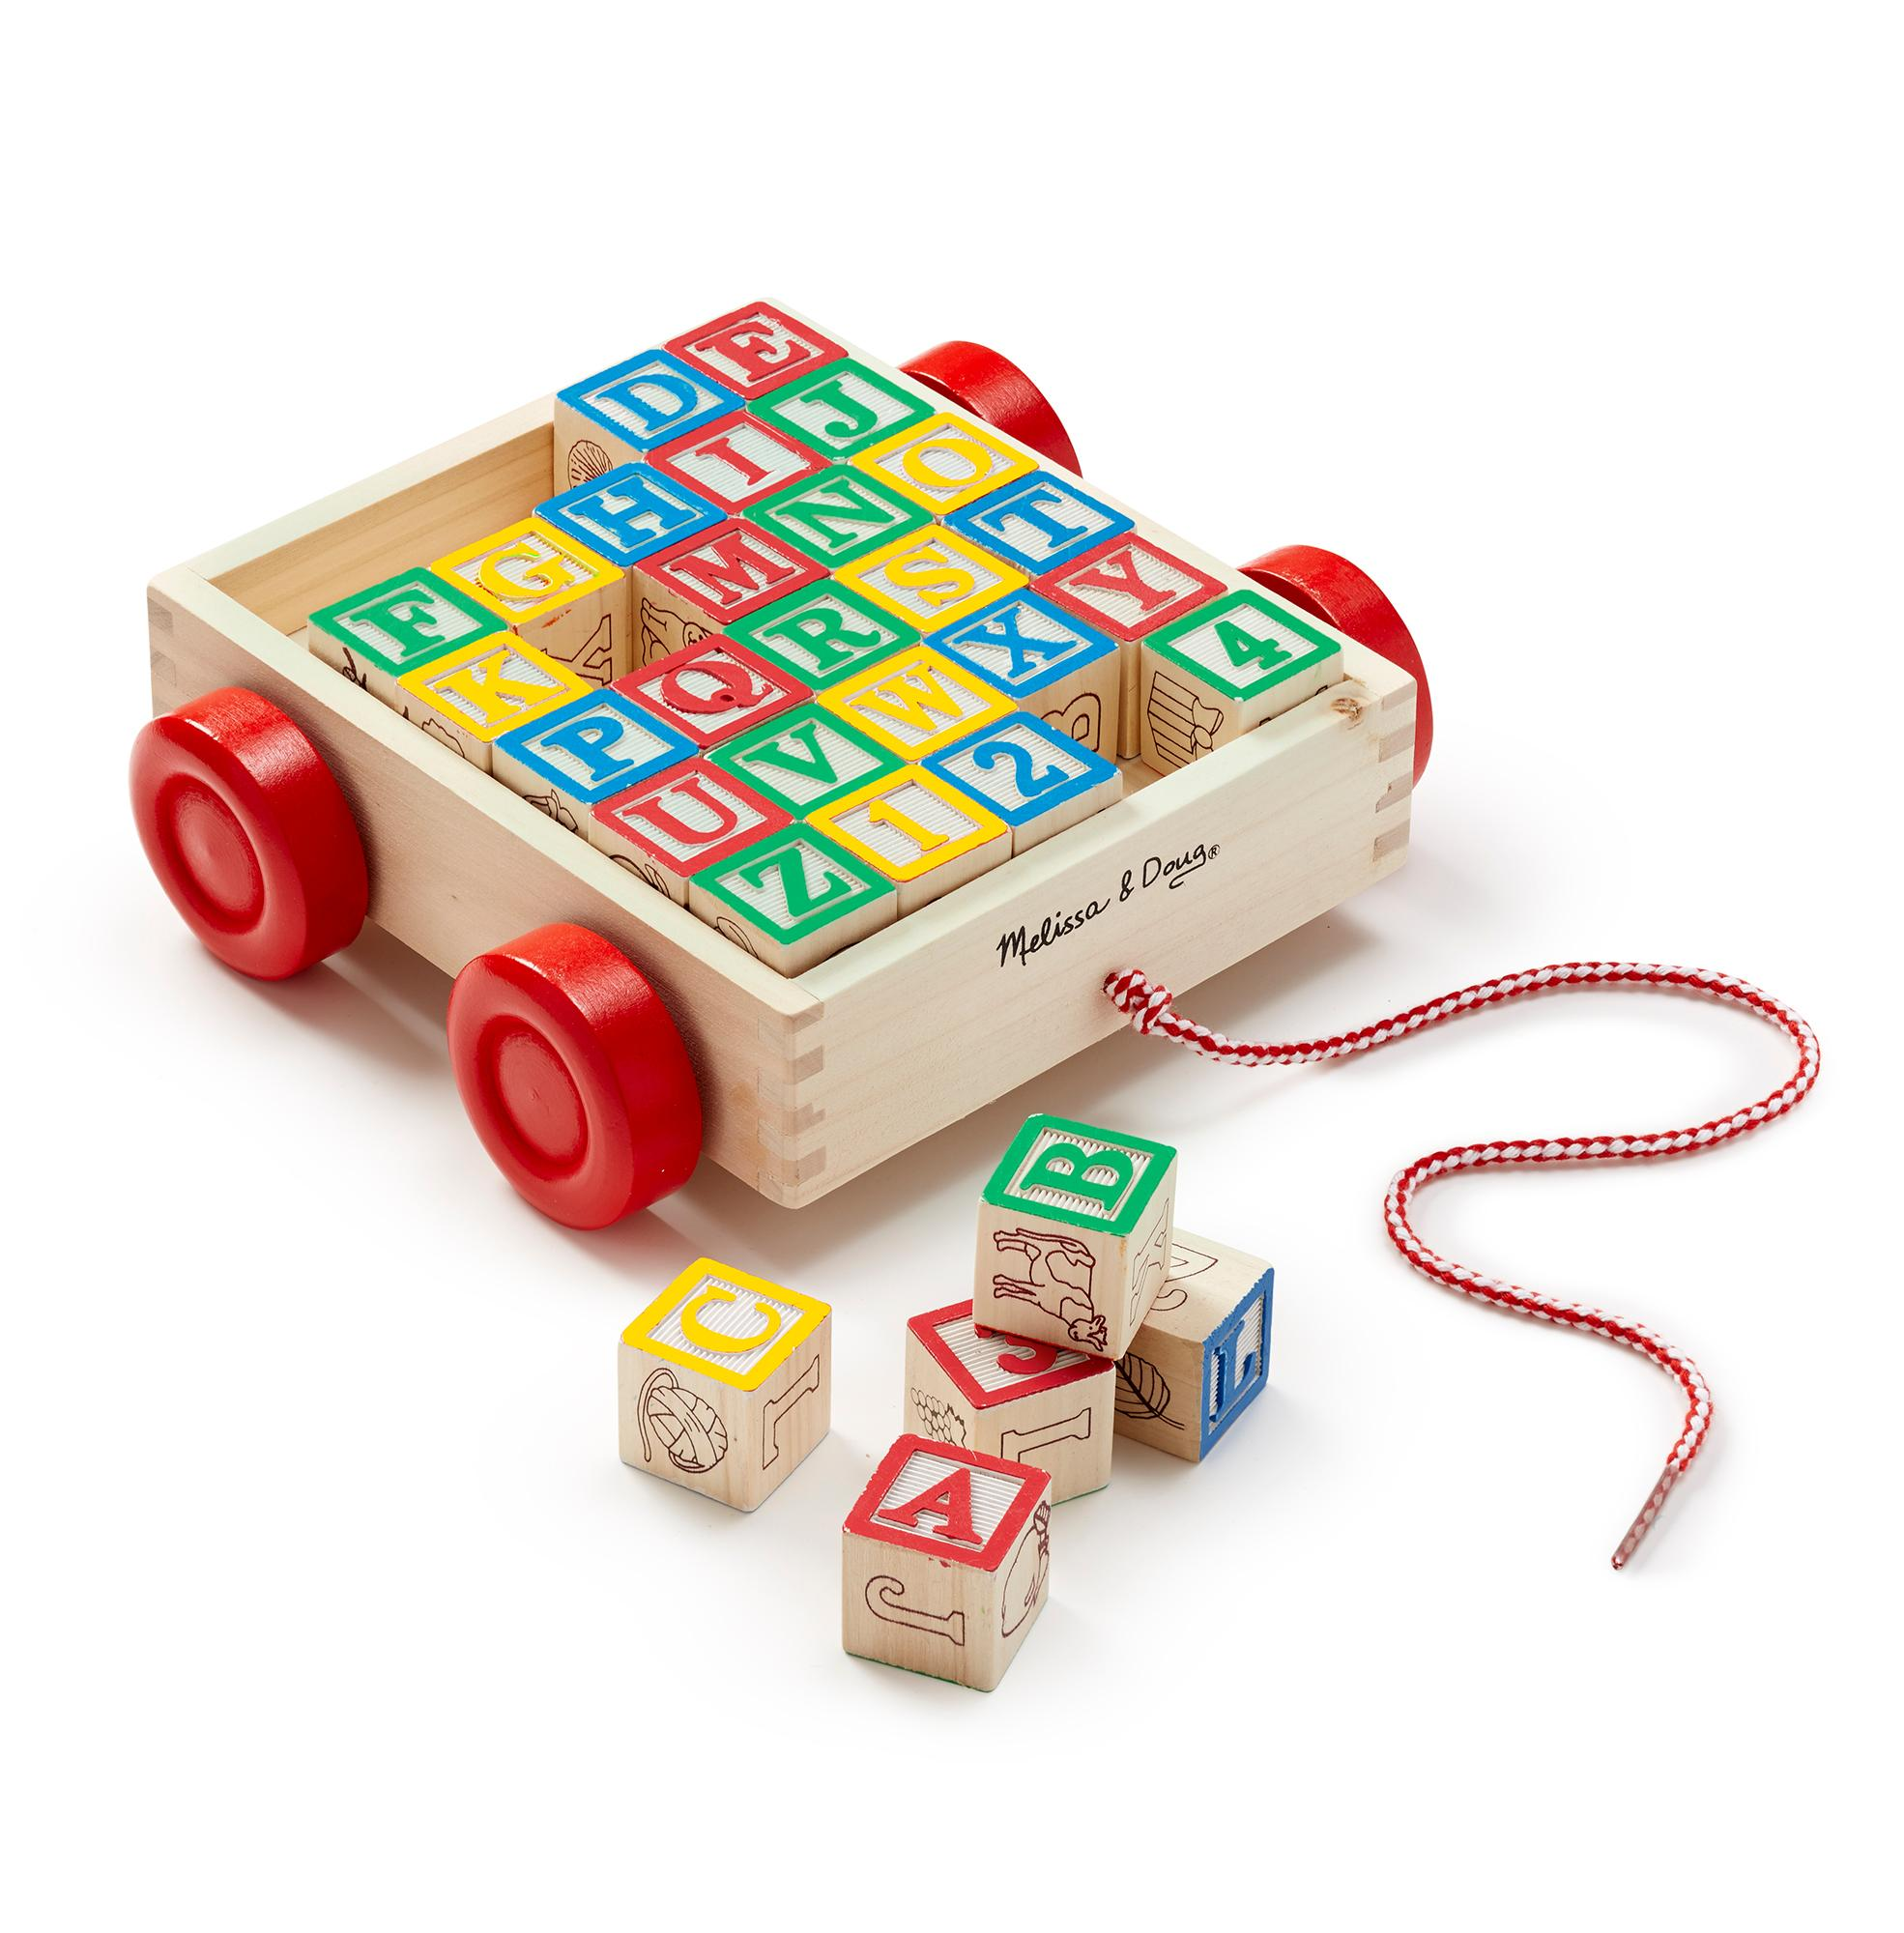 Melissa & Doug Classic ABC Wooden Block Cart Educational Toy With